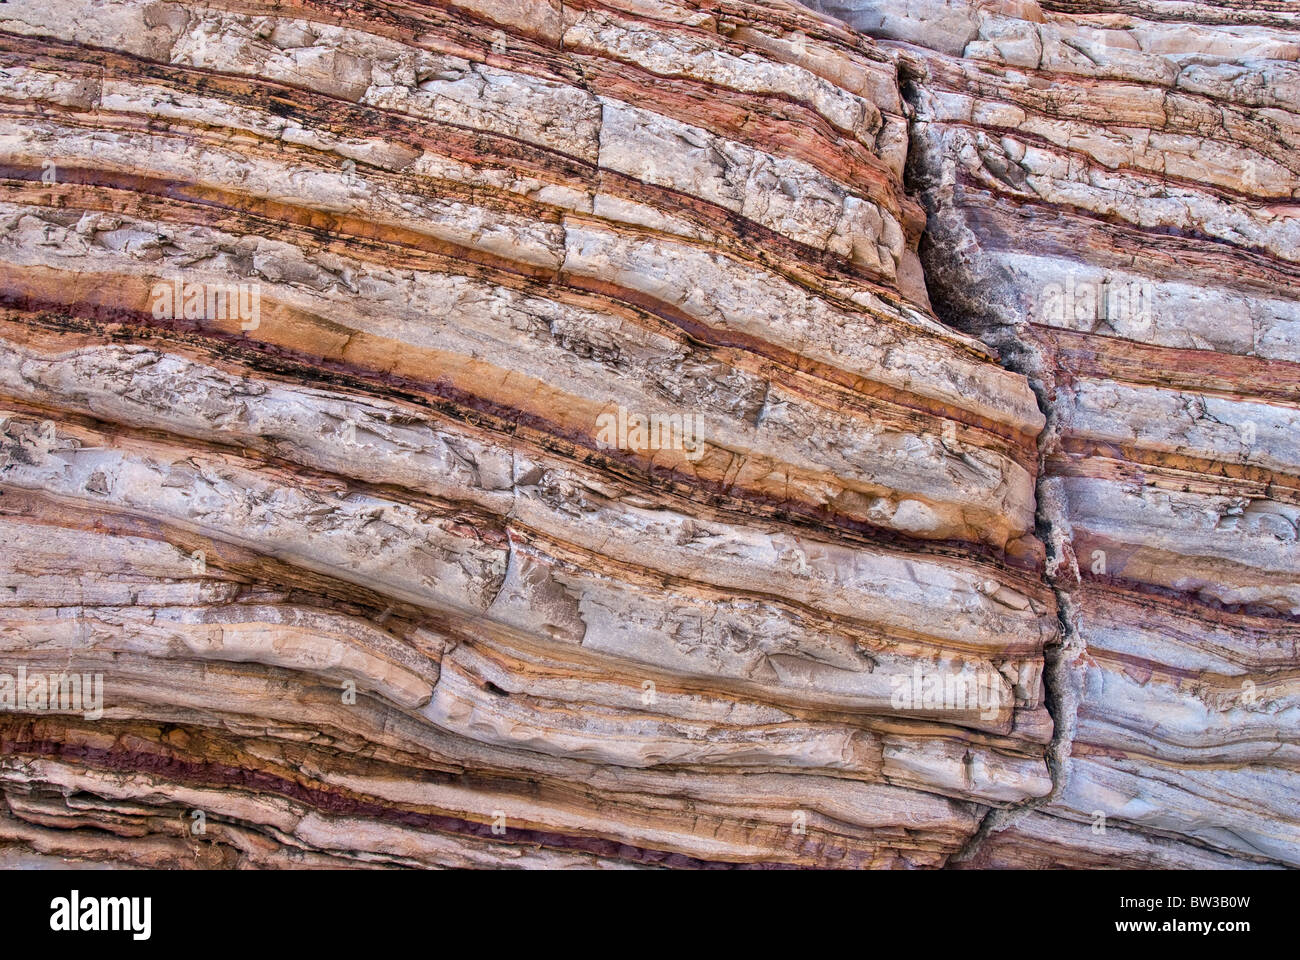 Boquillas formation limestone and shale twisted layers in Ernst Canyon, Chihuahuan Desert in Big Bend National Park, - Stock Image